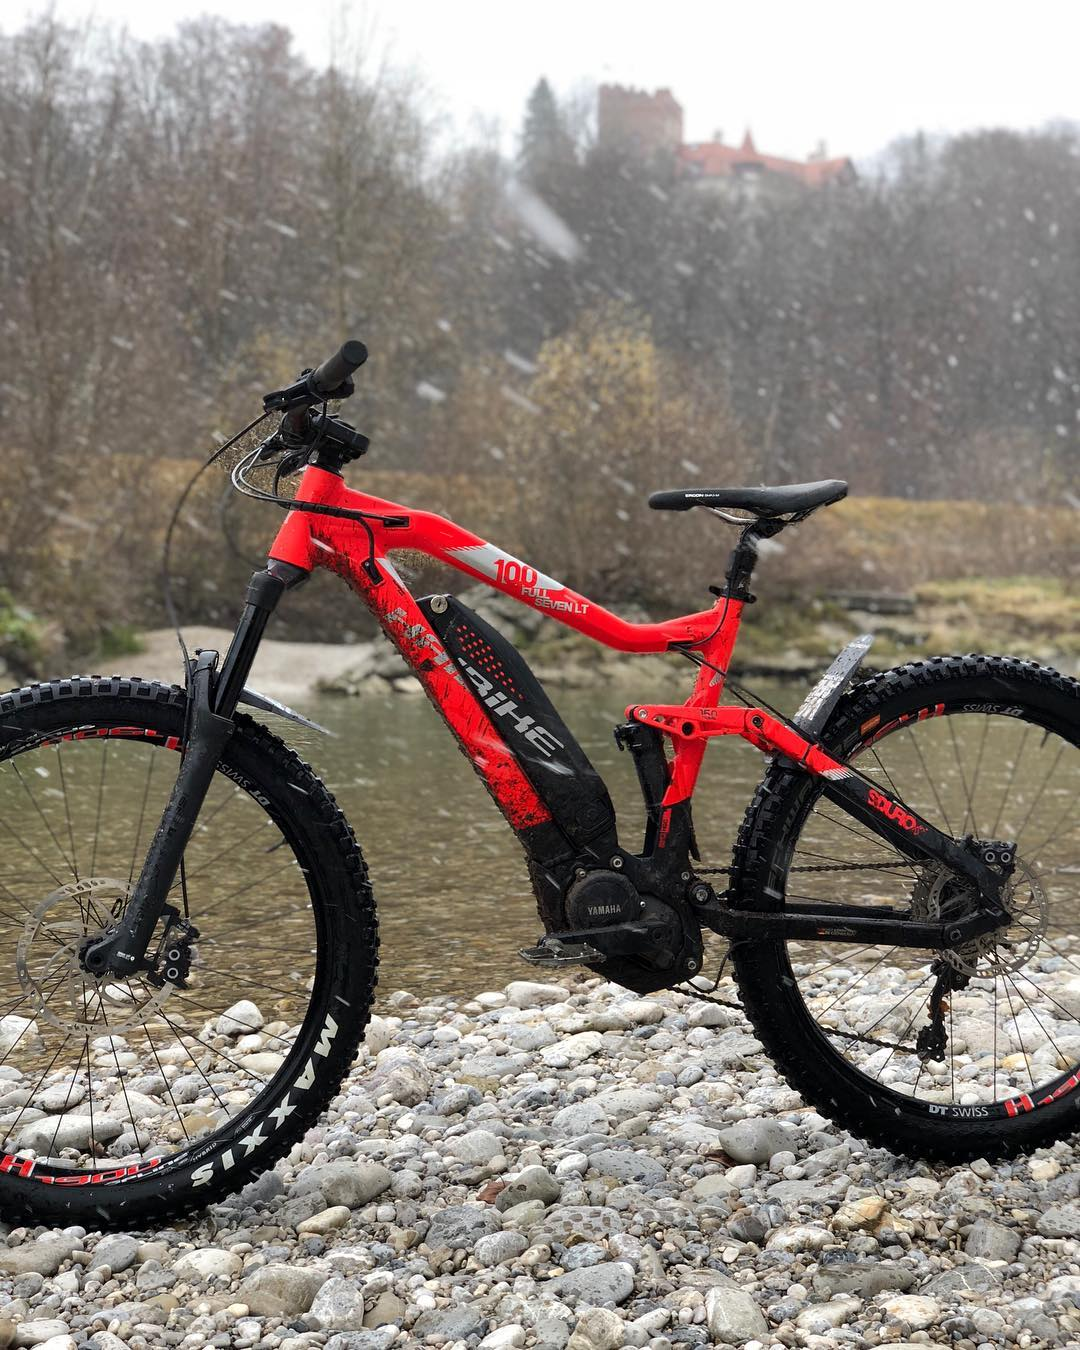 The FullSeven LT 10.0 brings color and good times to any cold winter day!🔥☃️❄️ 📷 @hdc_m #weareeperformance #emtb #ebike #sduro